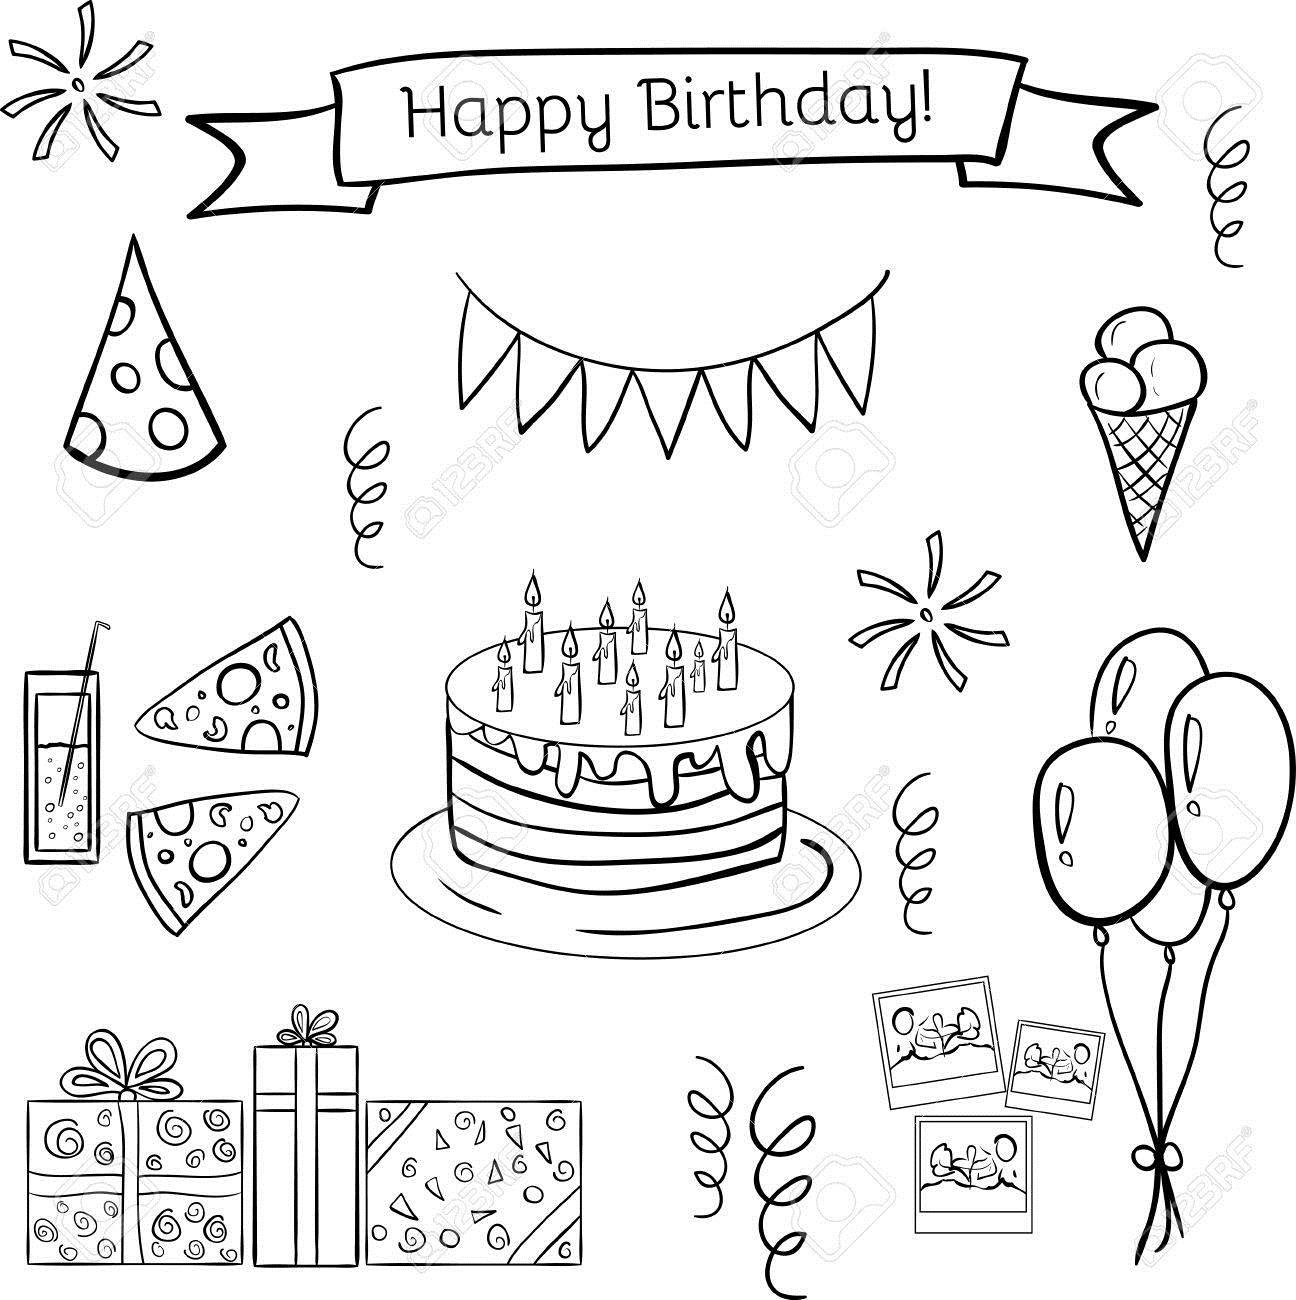 funny happy birthday drawings ; 54061805-happy-birthday-doodle-hand-drawn-icon-set-funny-and-cute-good-illustration-for-scrapbooking-sites-te